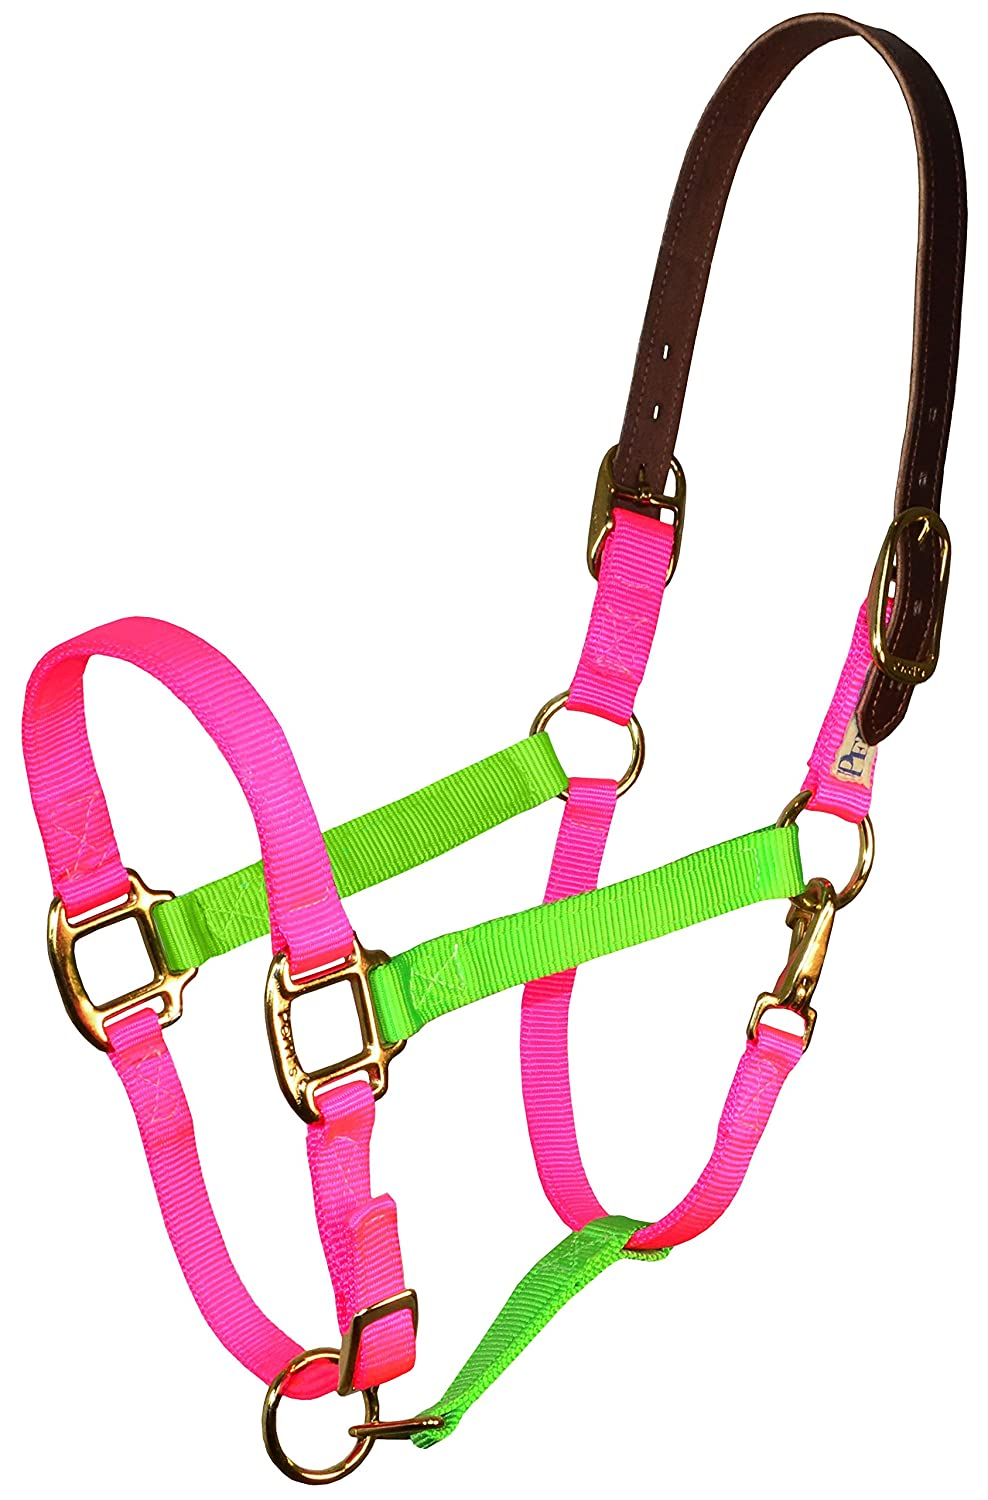 Perris Color Vision Halter Horse Lime Green//Hot Pink Nylon Safety Halter Perri/'s 153